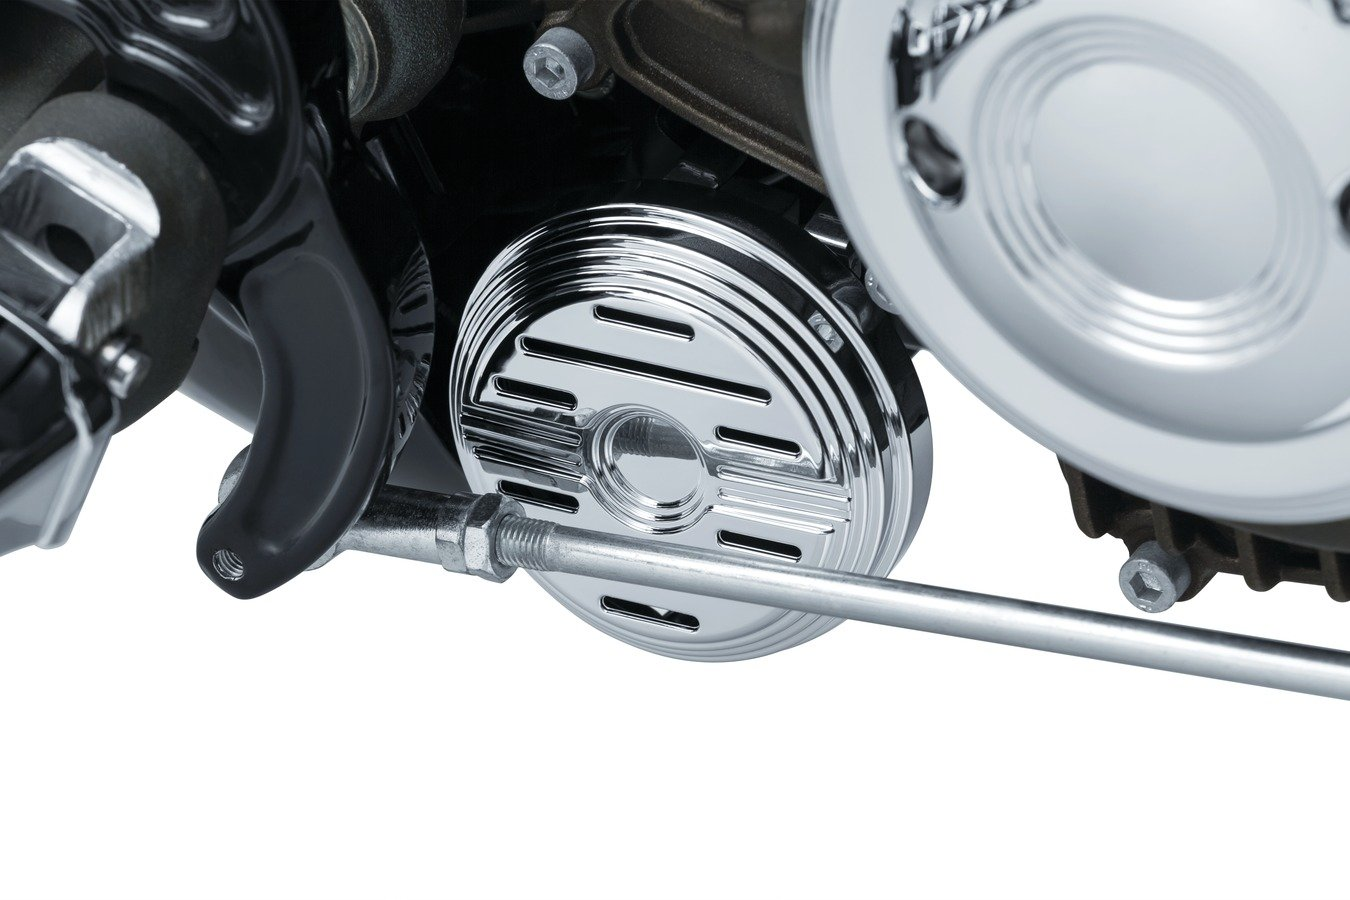 Kuryakyn Chrome Horn Cover and Relocation Kit for Indian 2015-2018 Scout Models